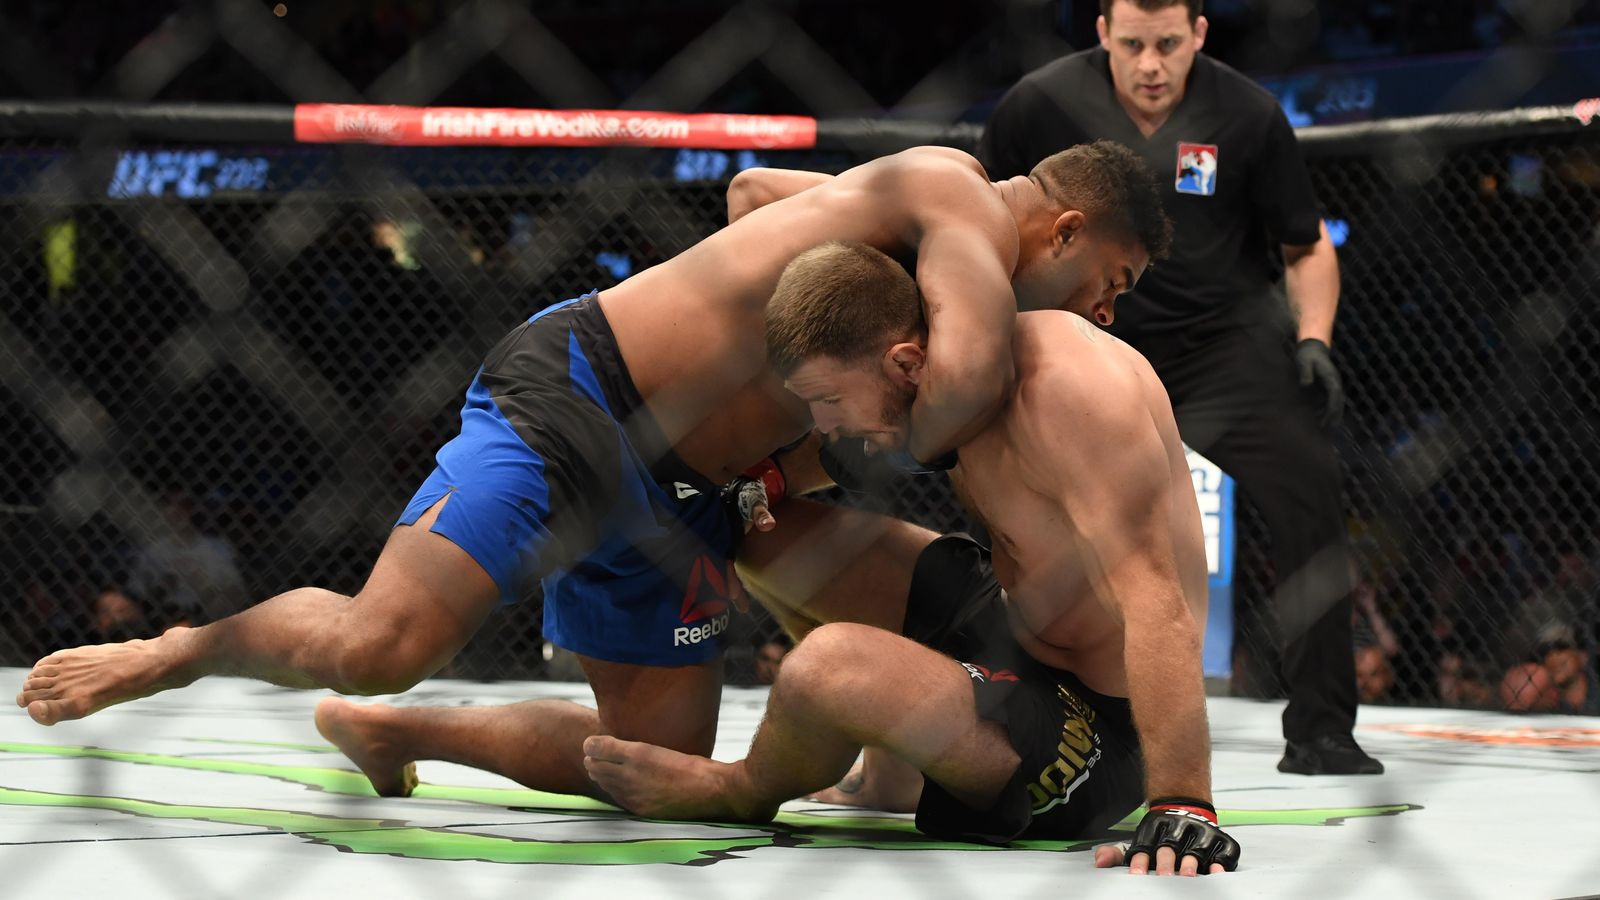 Stipe Miocic Alistair Overeem Guillotine choke